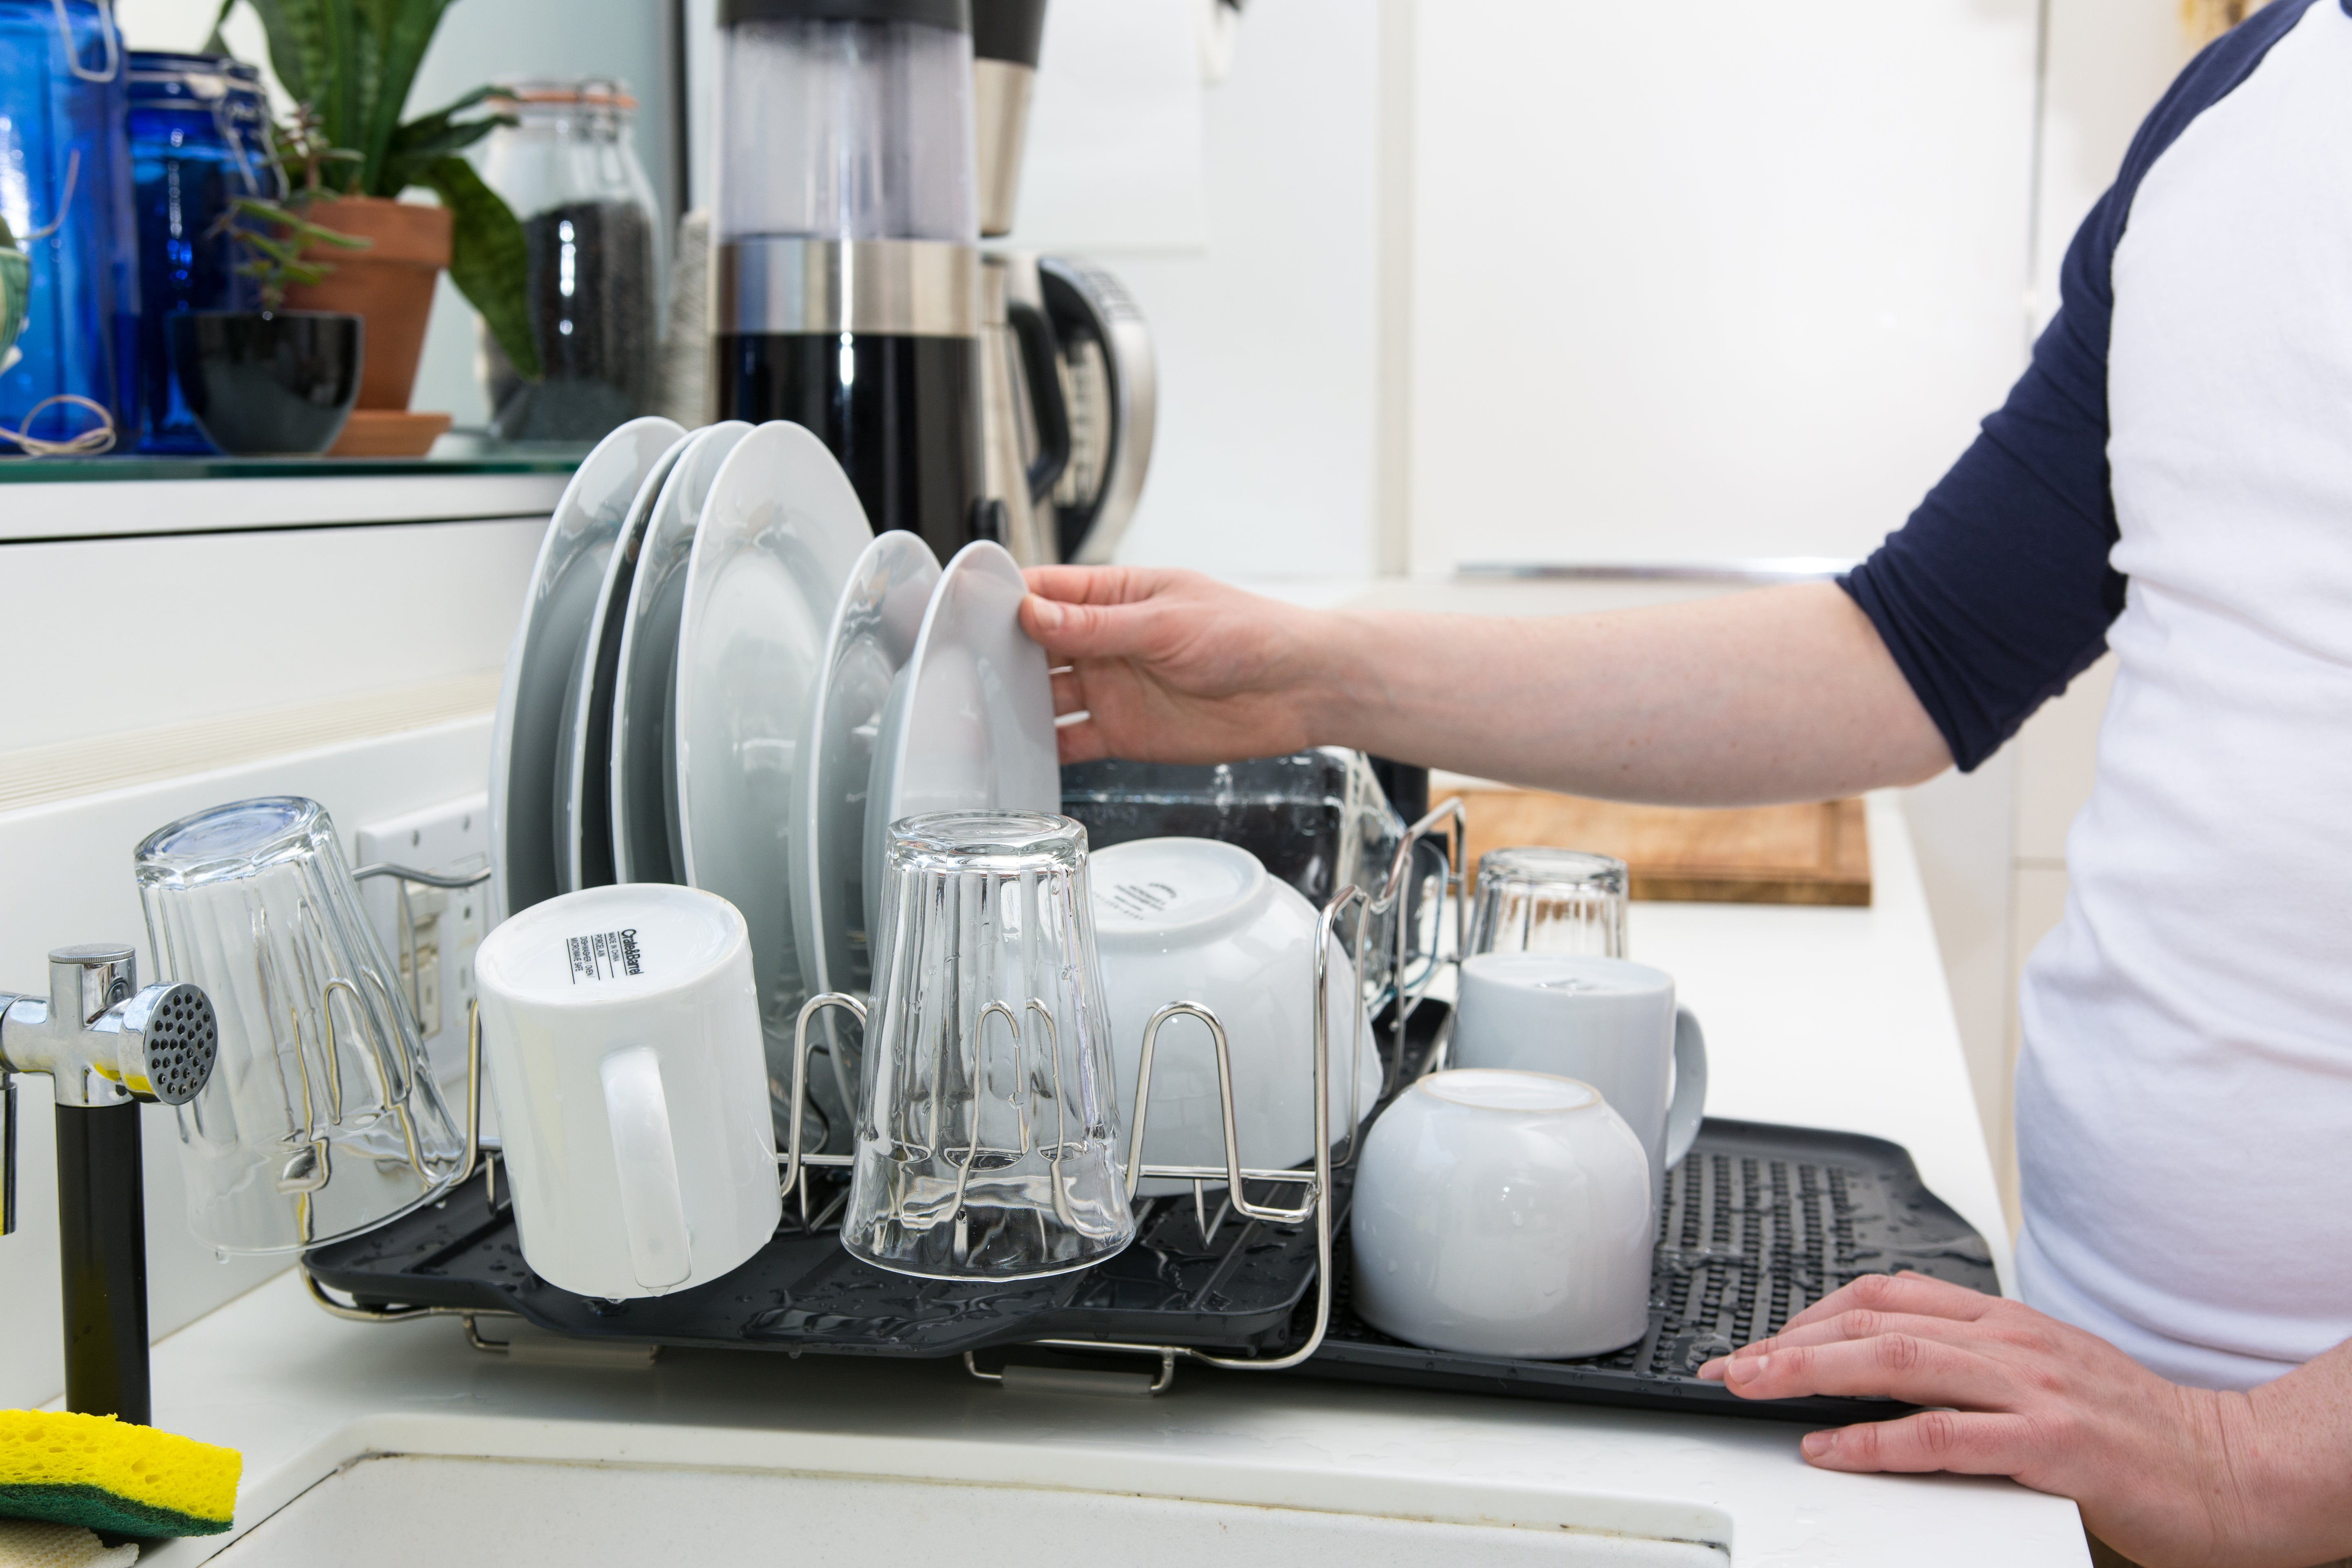 dishes on a dish rack